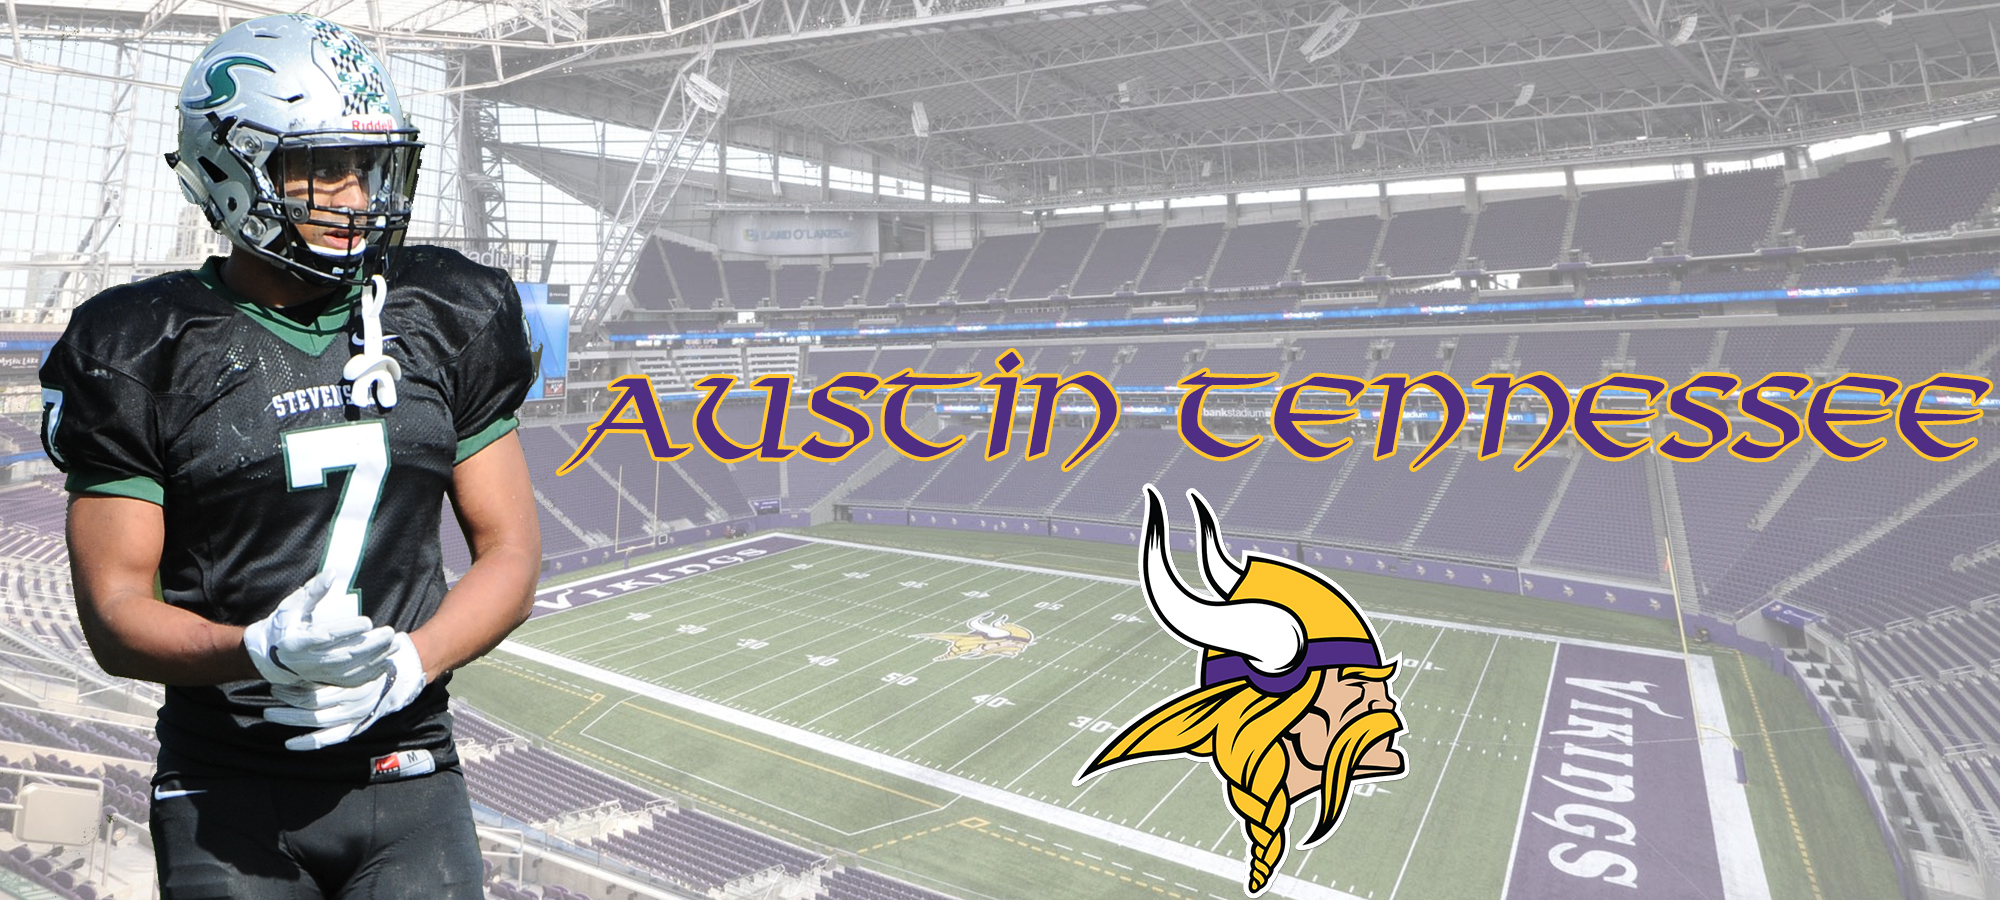 Stevenson's Austin Tennessee Signs With Minnesota Vikings